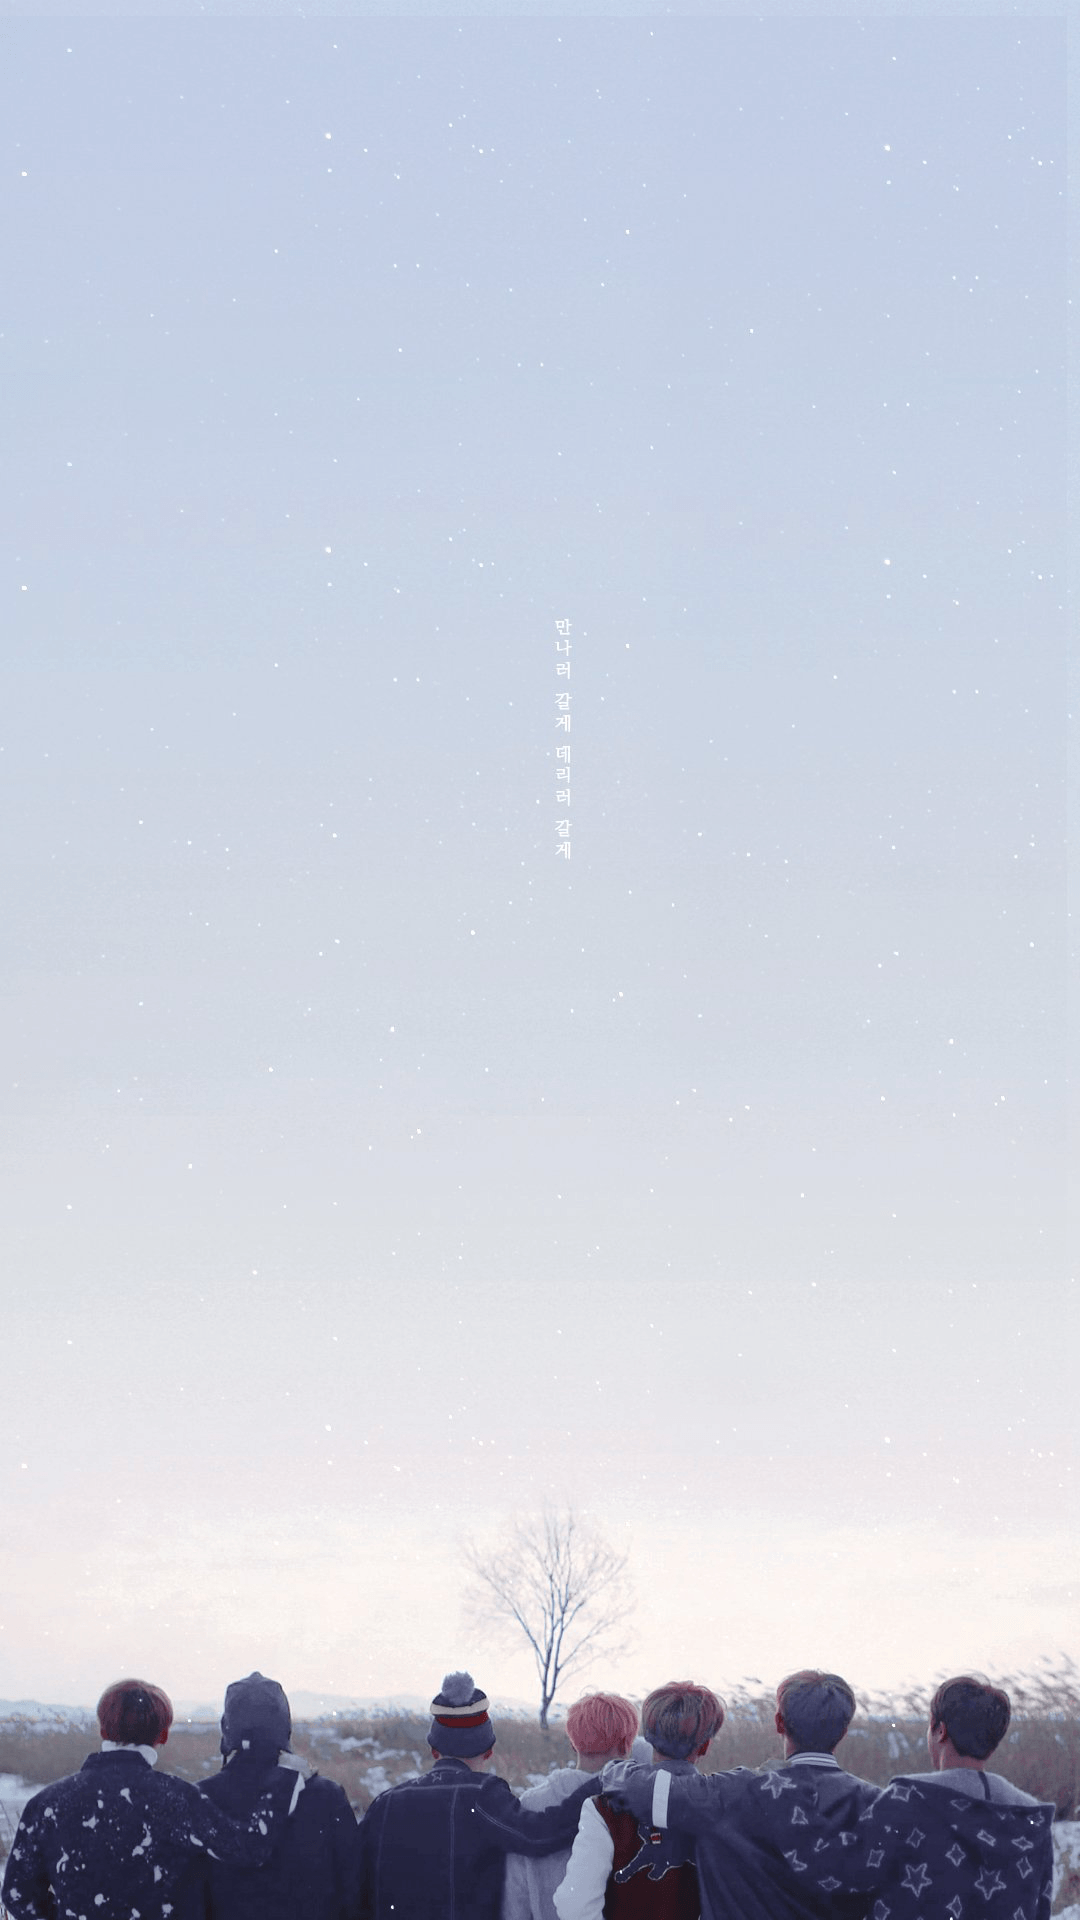 BTS Aesthetic Wallpapers   Top BTS Aesthetic Backgrounds 1080x1920